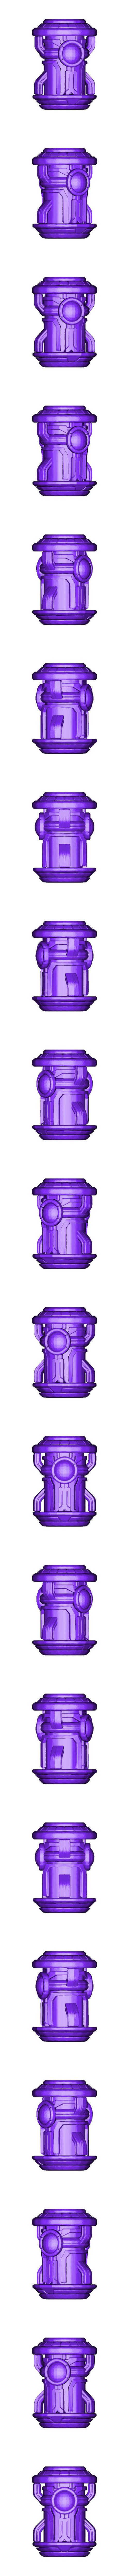 AlienFuelCanister.stl Download free STL file Alien Ancient Props Chest Tablet Etc x12 Savage Planet • Model to 3D print, CharlieVet